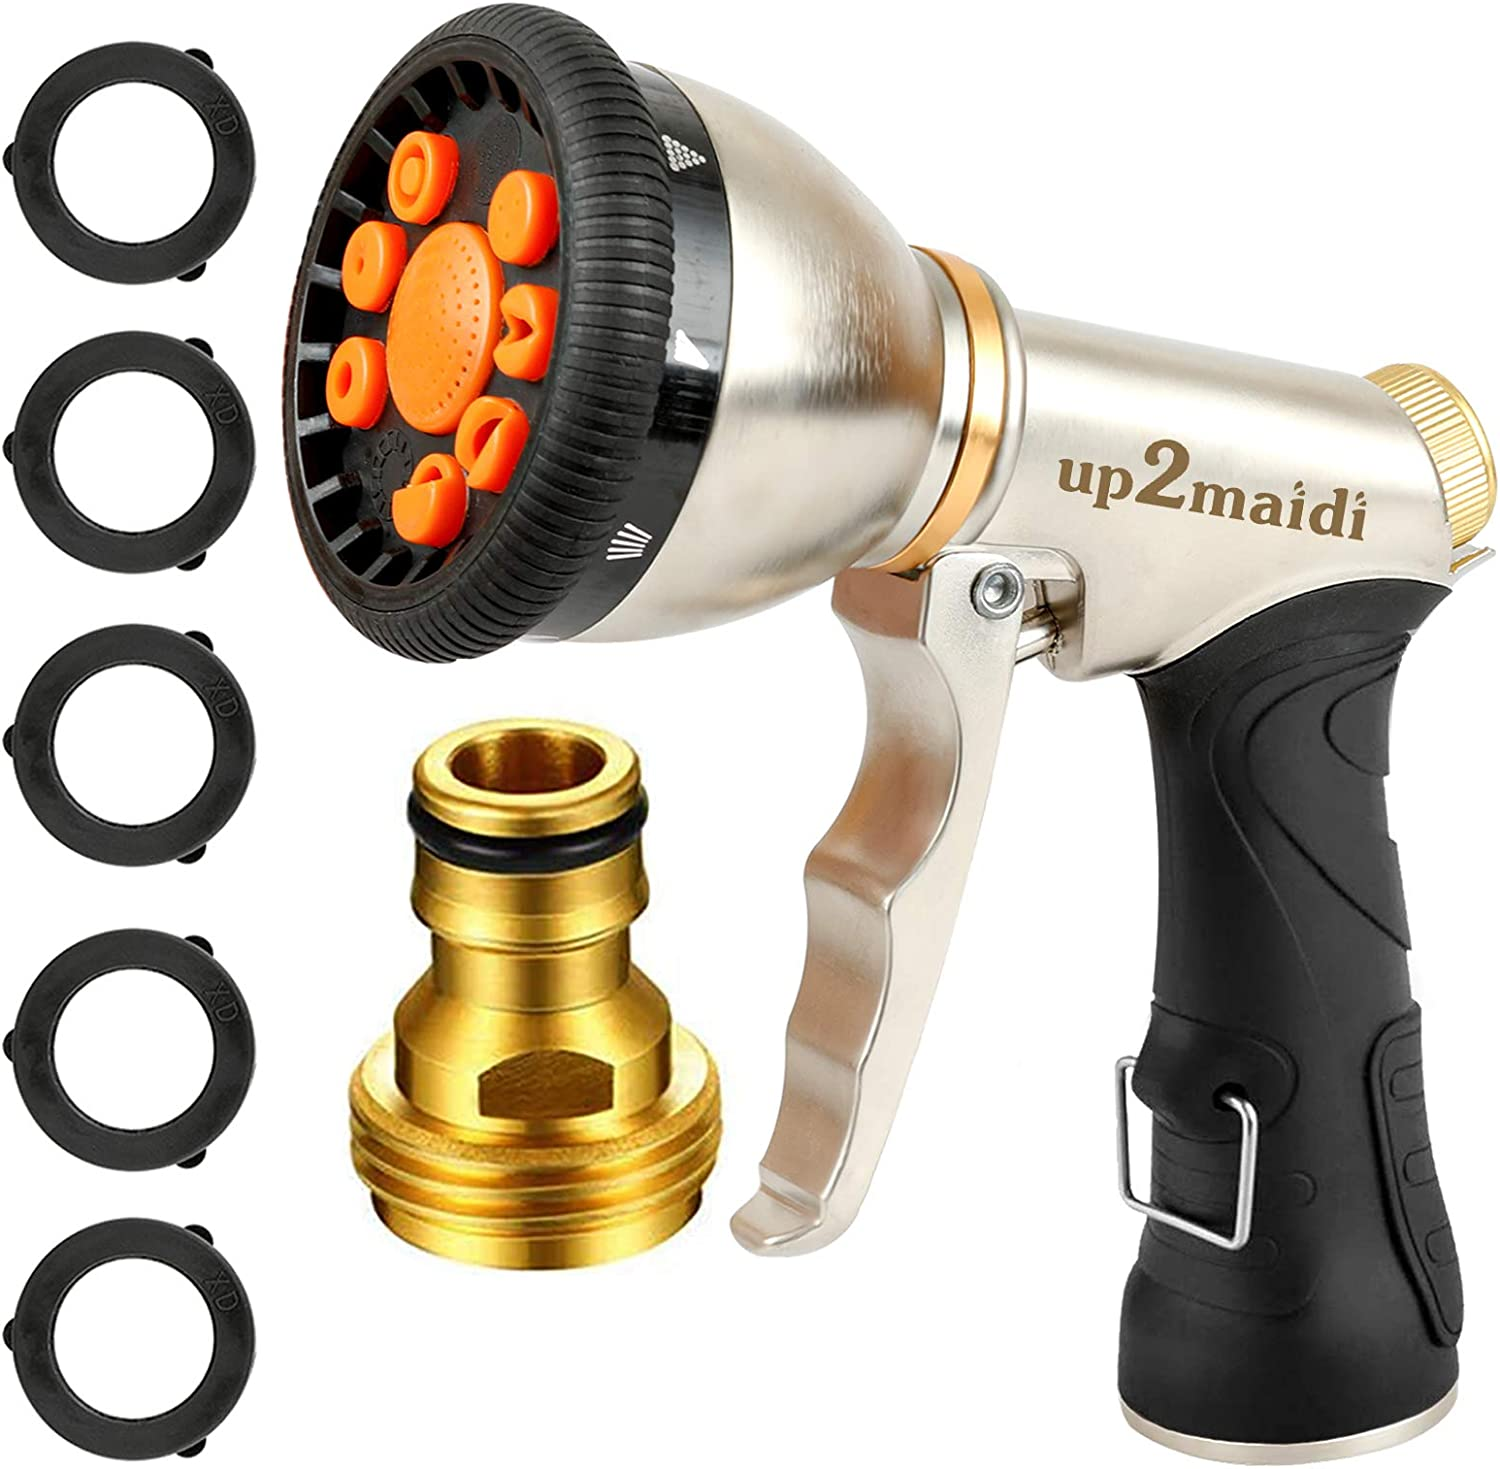 UP2MAIDI Garden Hose Nozzle Heavy-Duty, Easy to Use Spray Nozzle High Pressure Water Hose Nozzle with 9 Patterns for Watering Garden, Washing Cars and Showering Dogs Pets